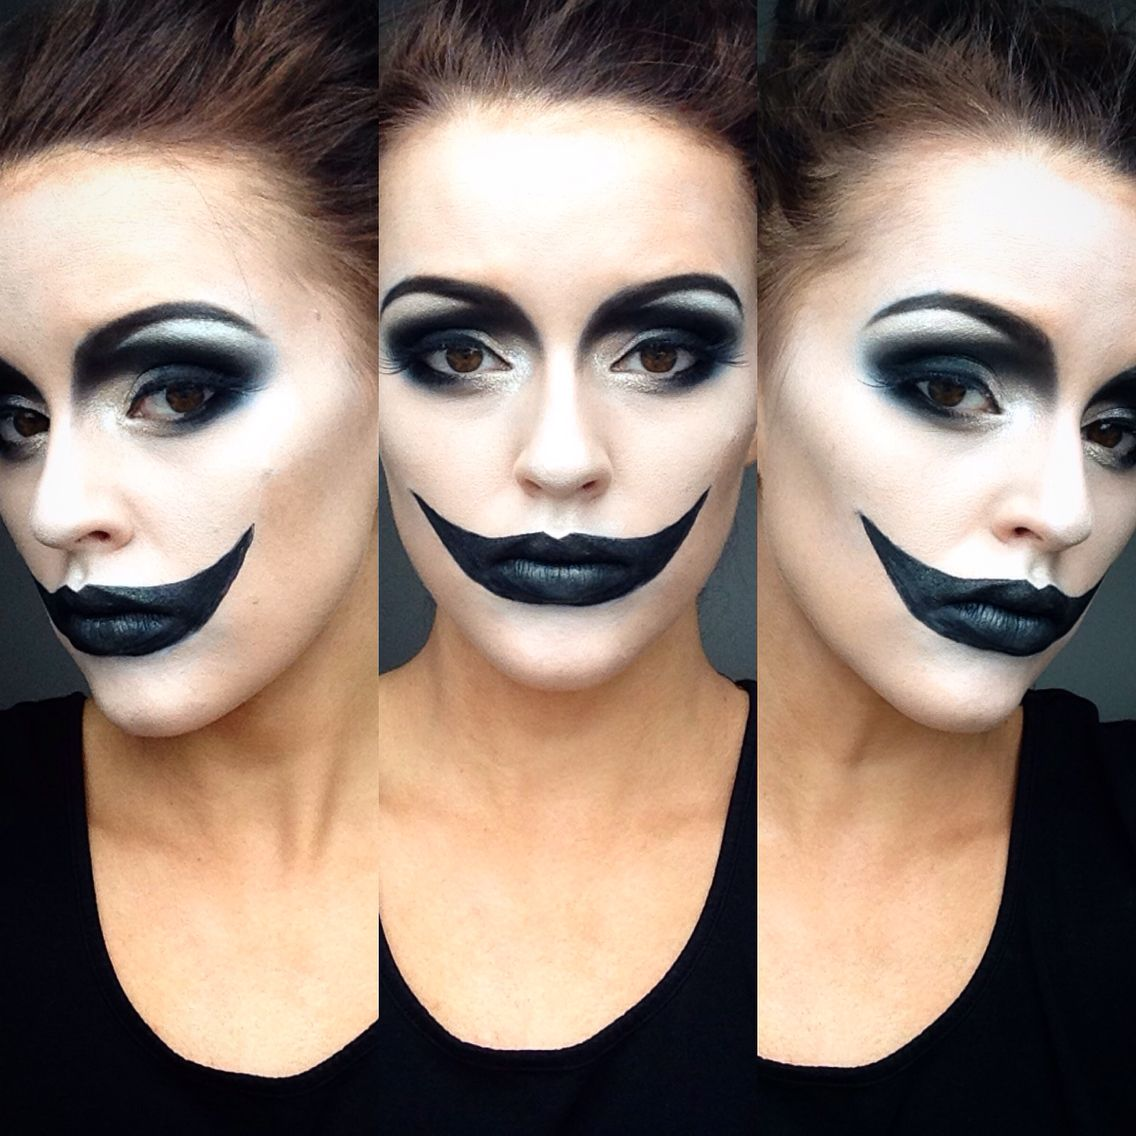 halloween makeup done by me illamasqua inspired follow me on instagram chloecatherinemakeup like my